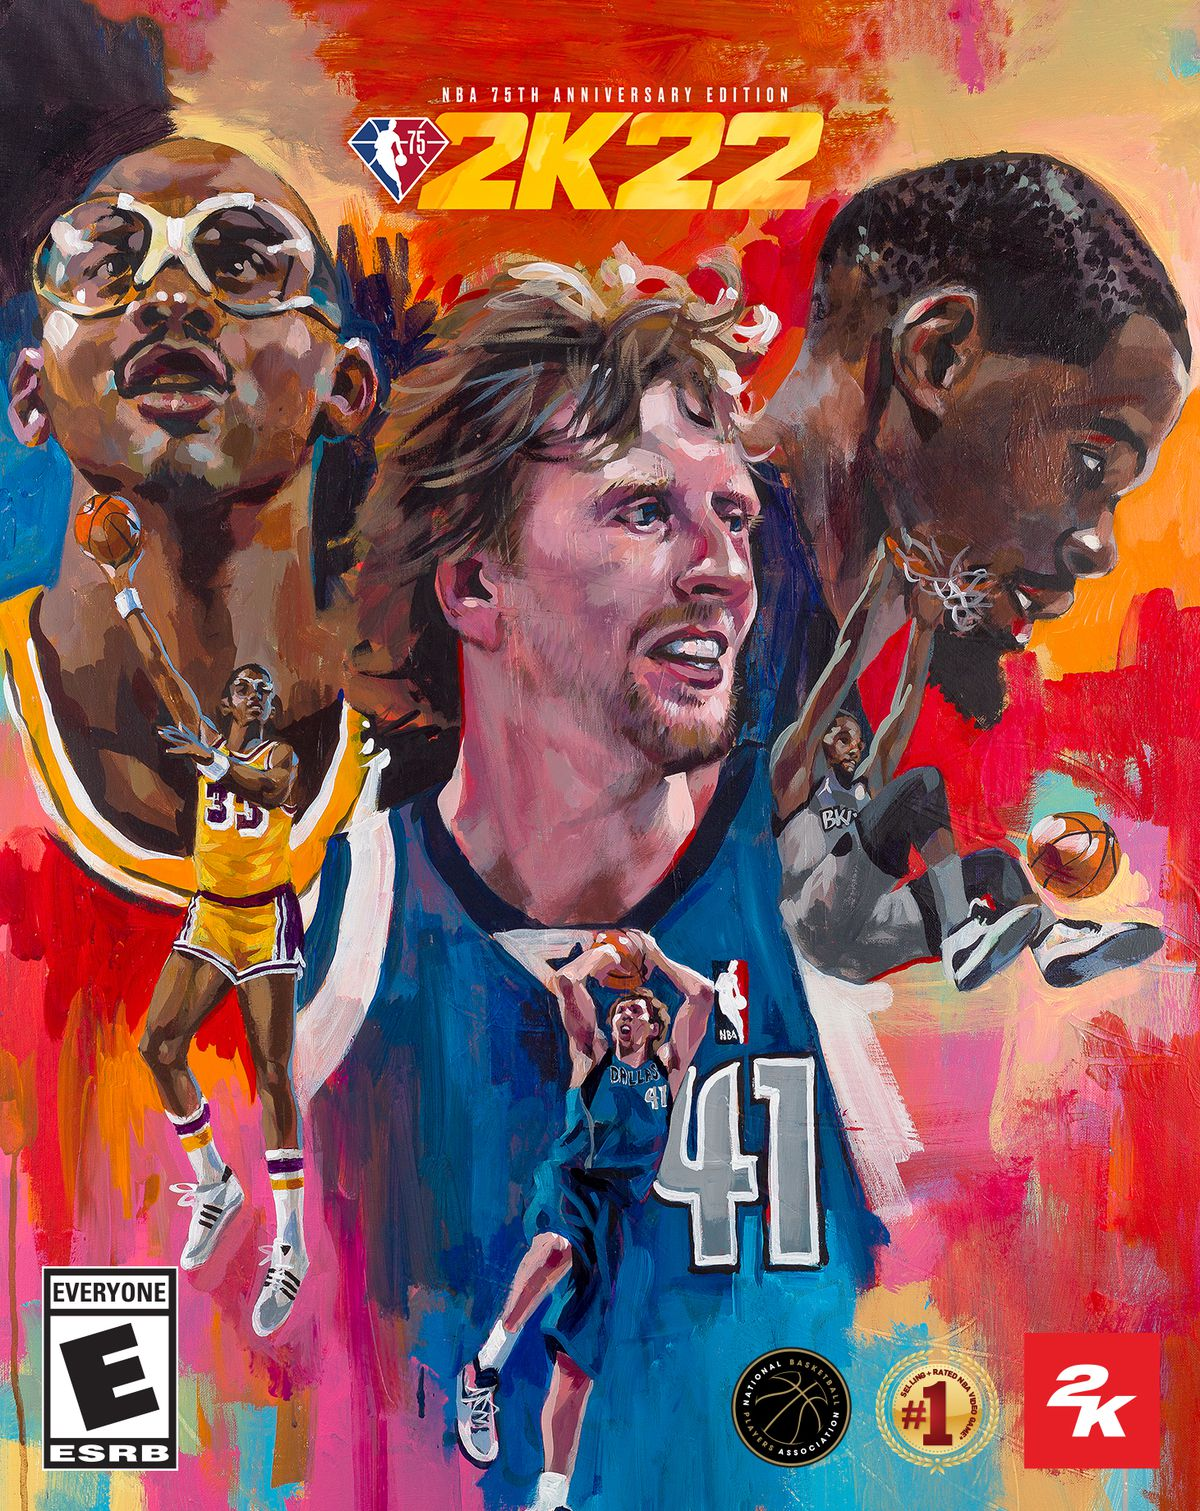 Kareem Abdul-Jabbar, Dirk Nowitzki and Kevin Durant on the cover for NBA 2K22.